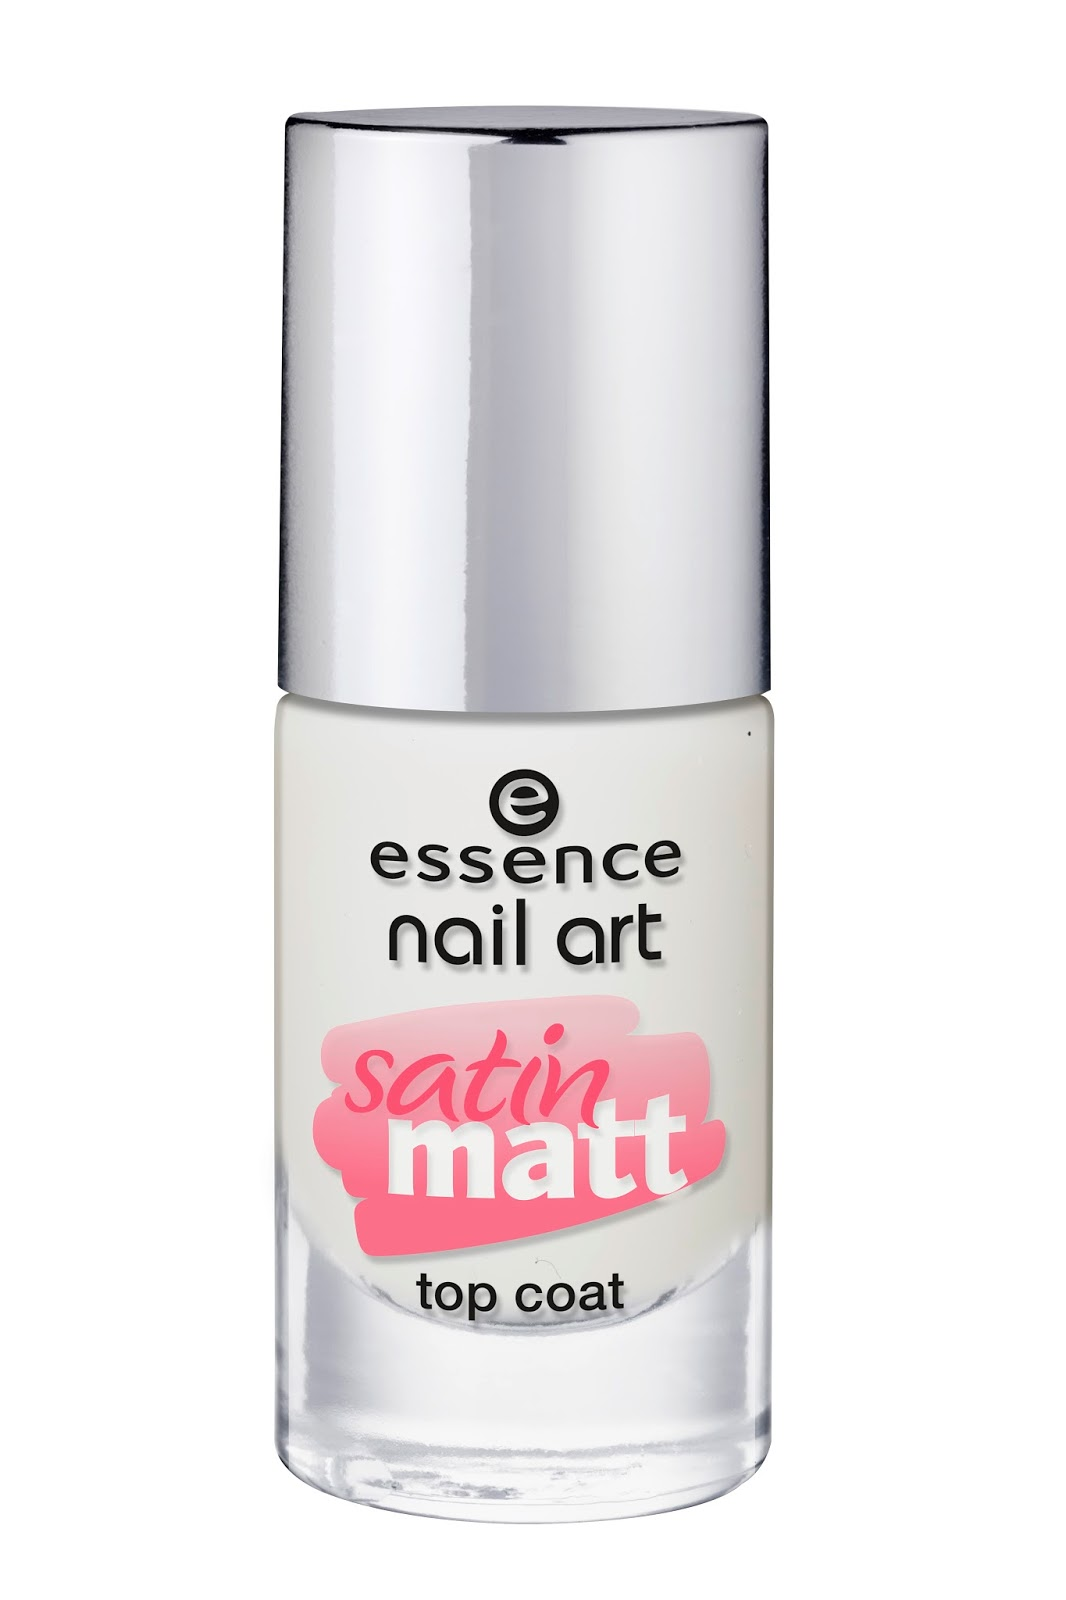 Essence nail art satin matt top coat